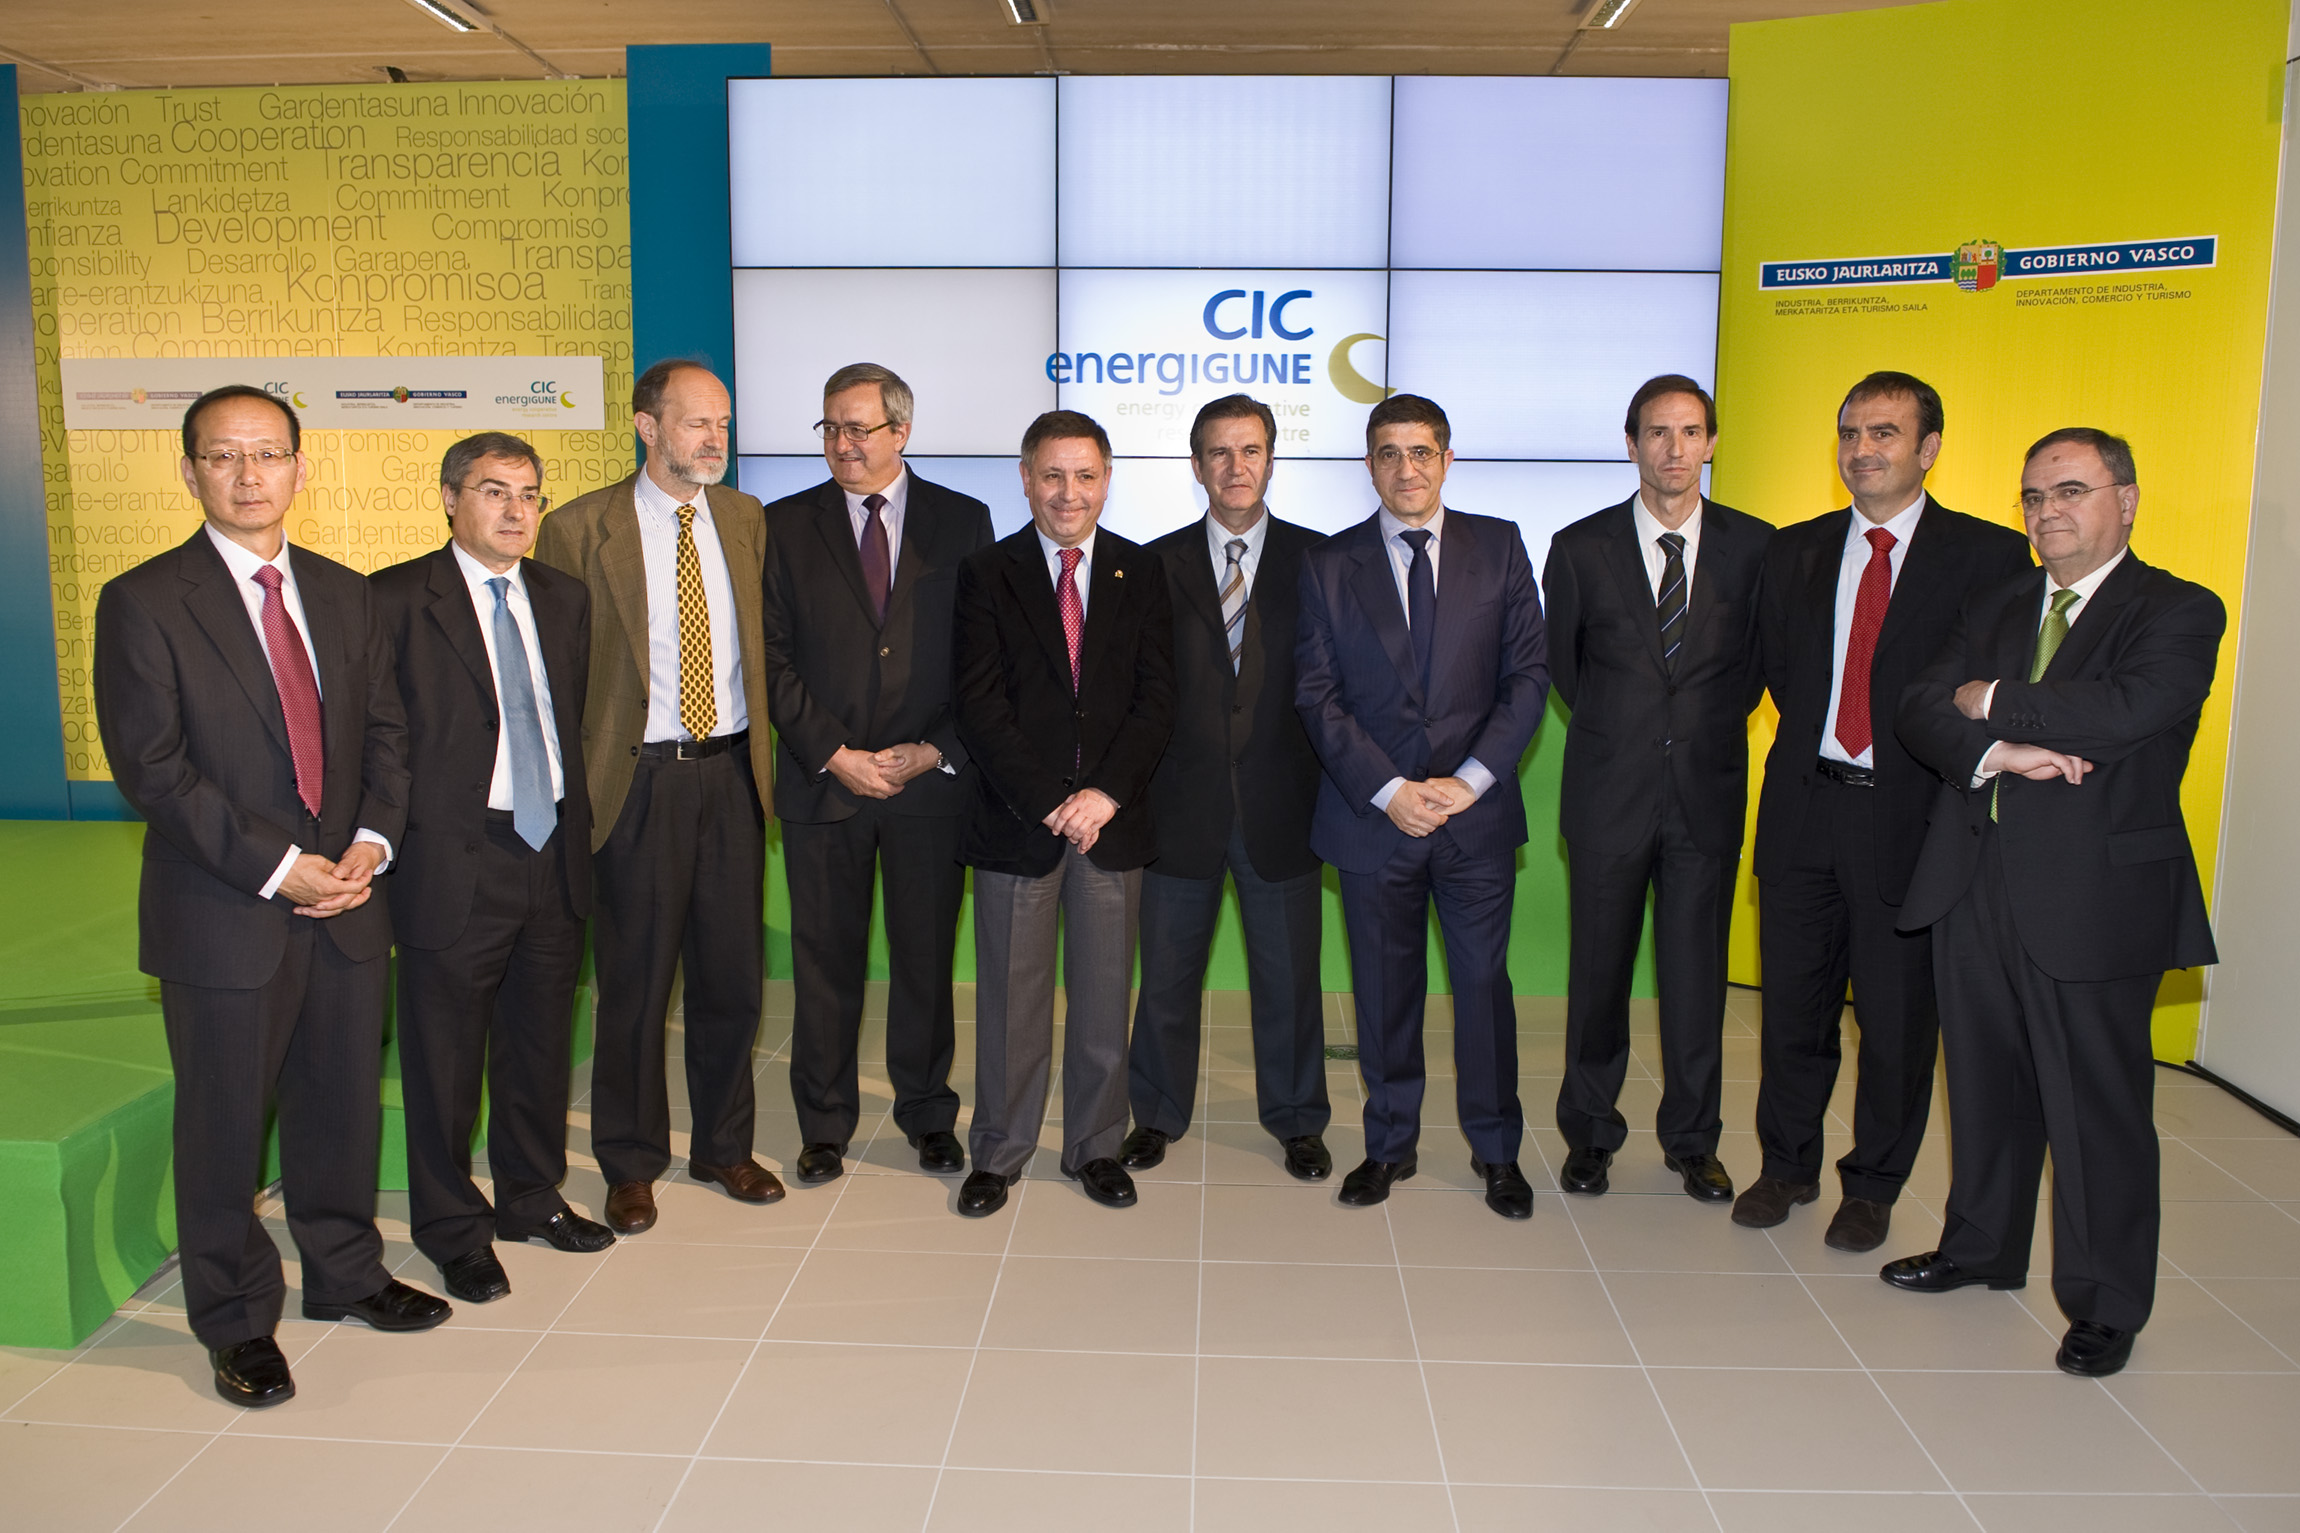 Inaugurado el CIC energiGUNE , el primer centro en almacenamiento de energa 